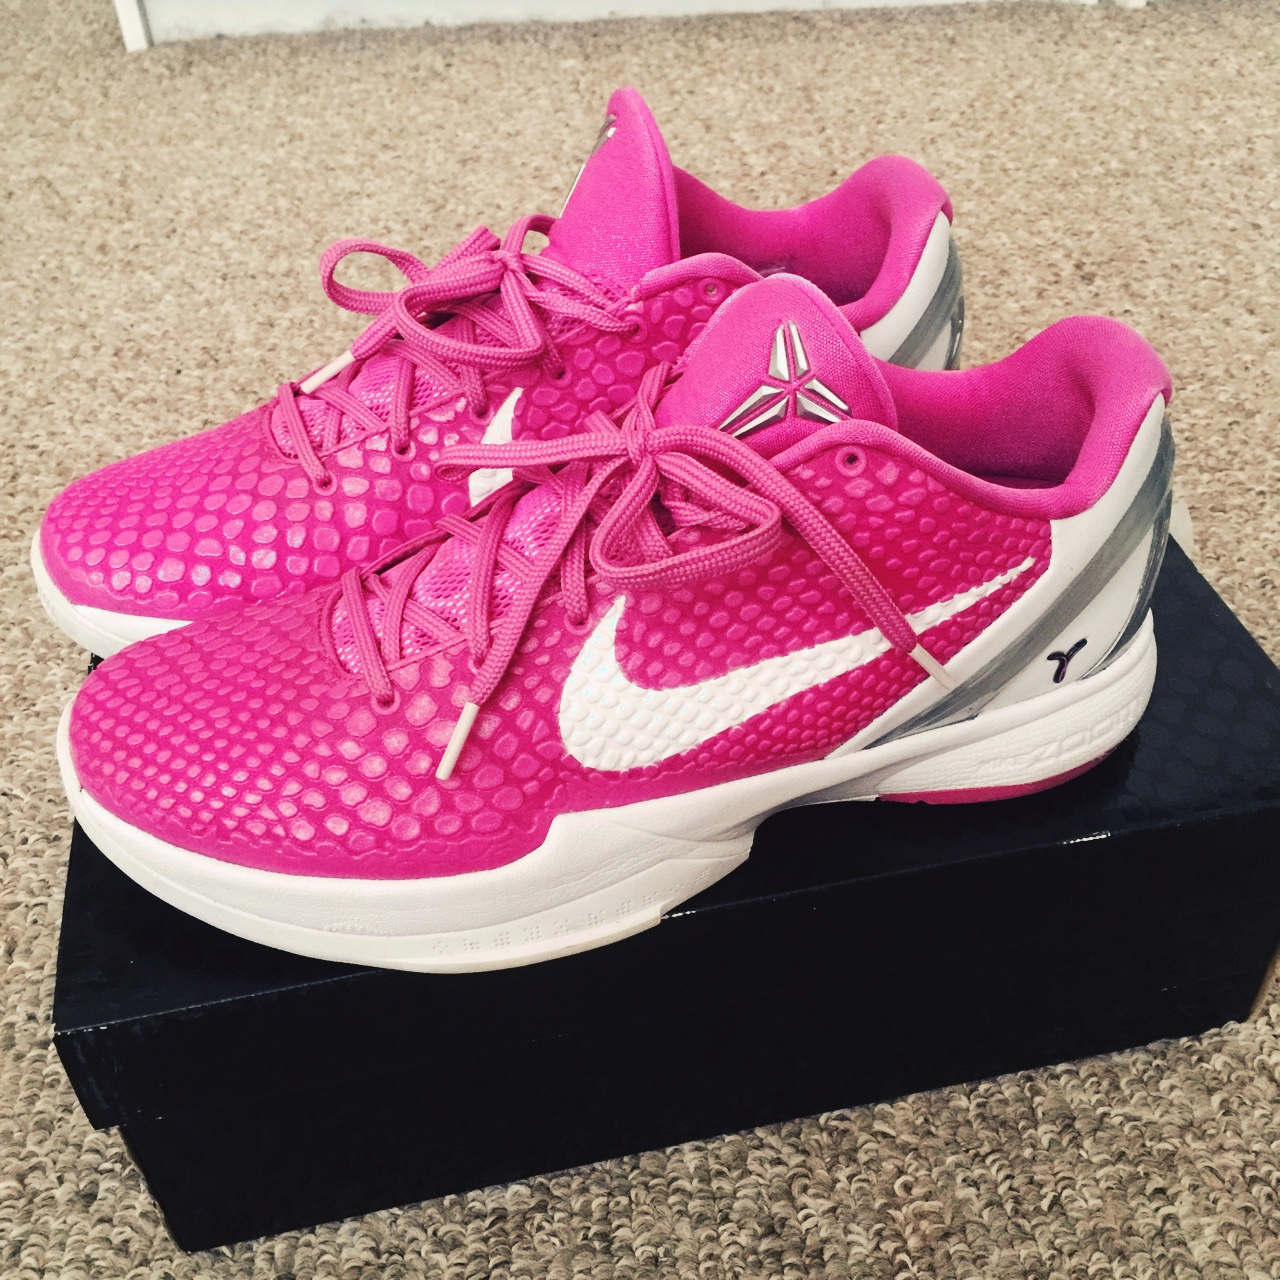 Limited edition breast cancer awareness